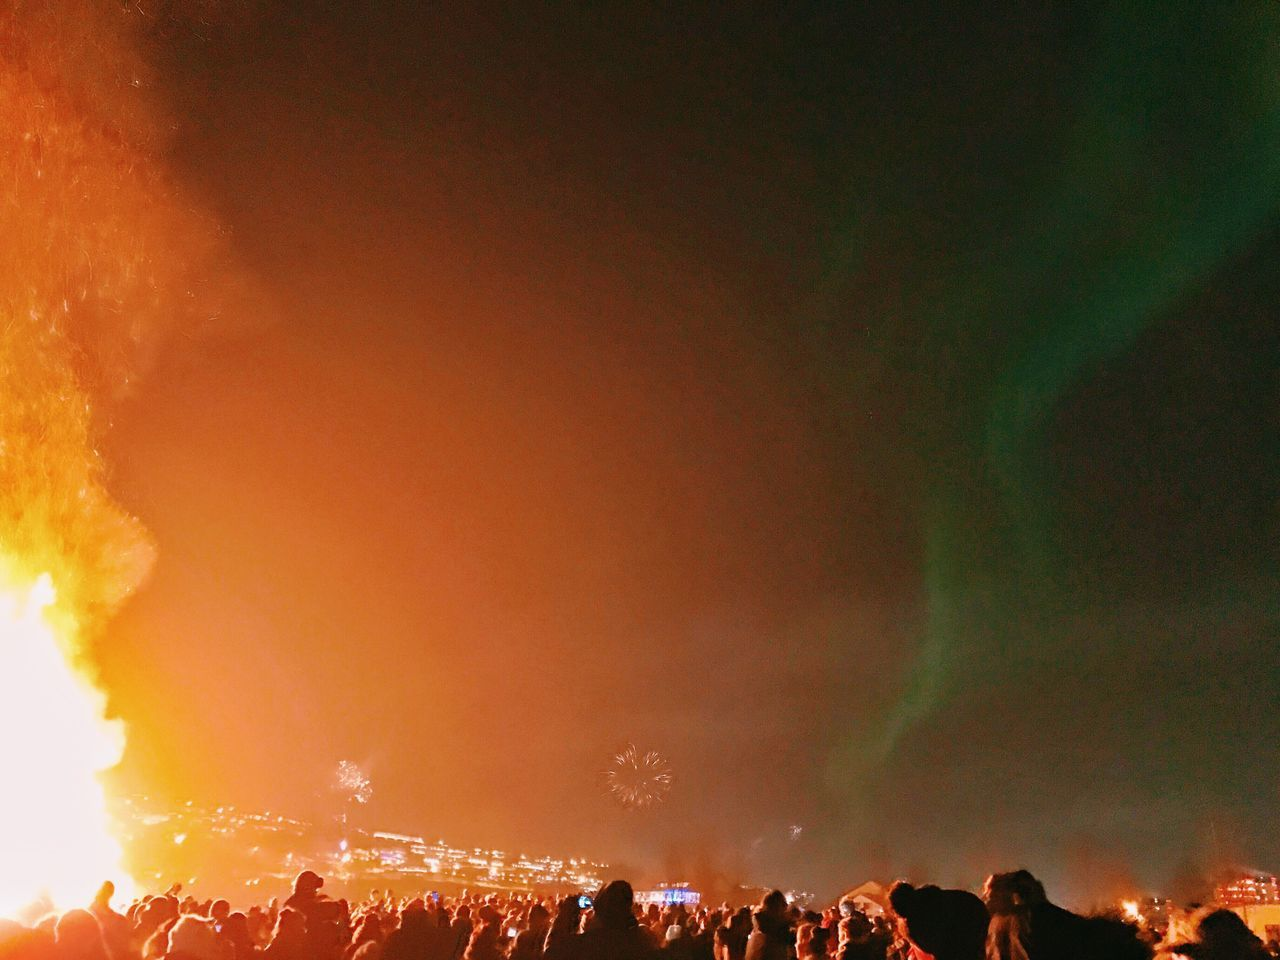 Bonfire Fireworks Aurora Borealis NorthernLights Reykjavik Iceland Nye2016 NewYear Celebration IPhone7Plus